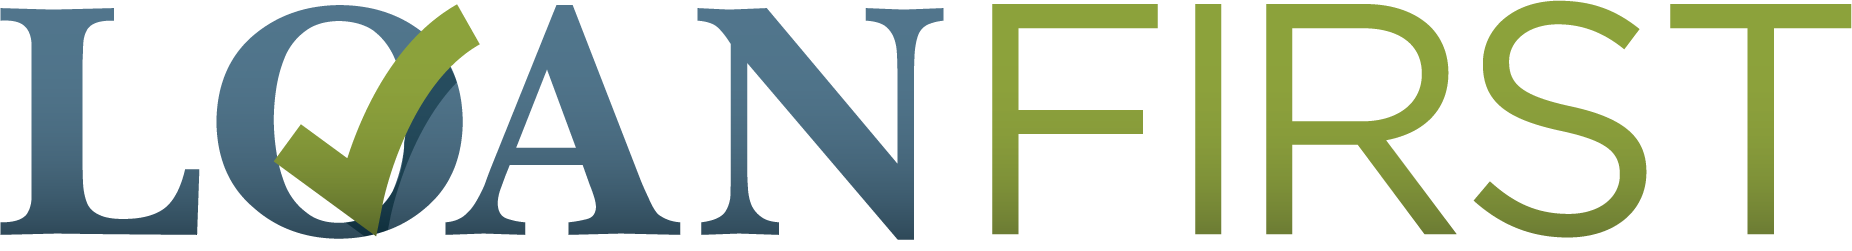 LoanFirst_Logo_no tagline_Final.png